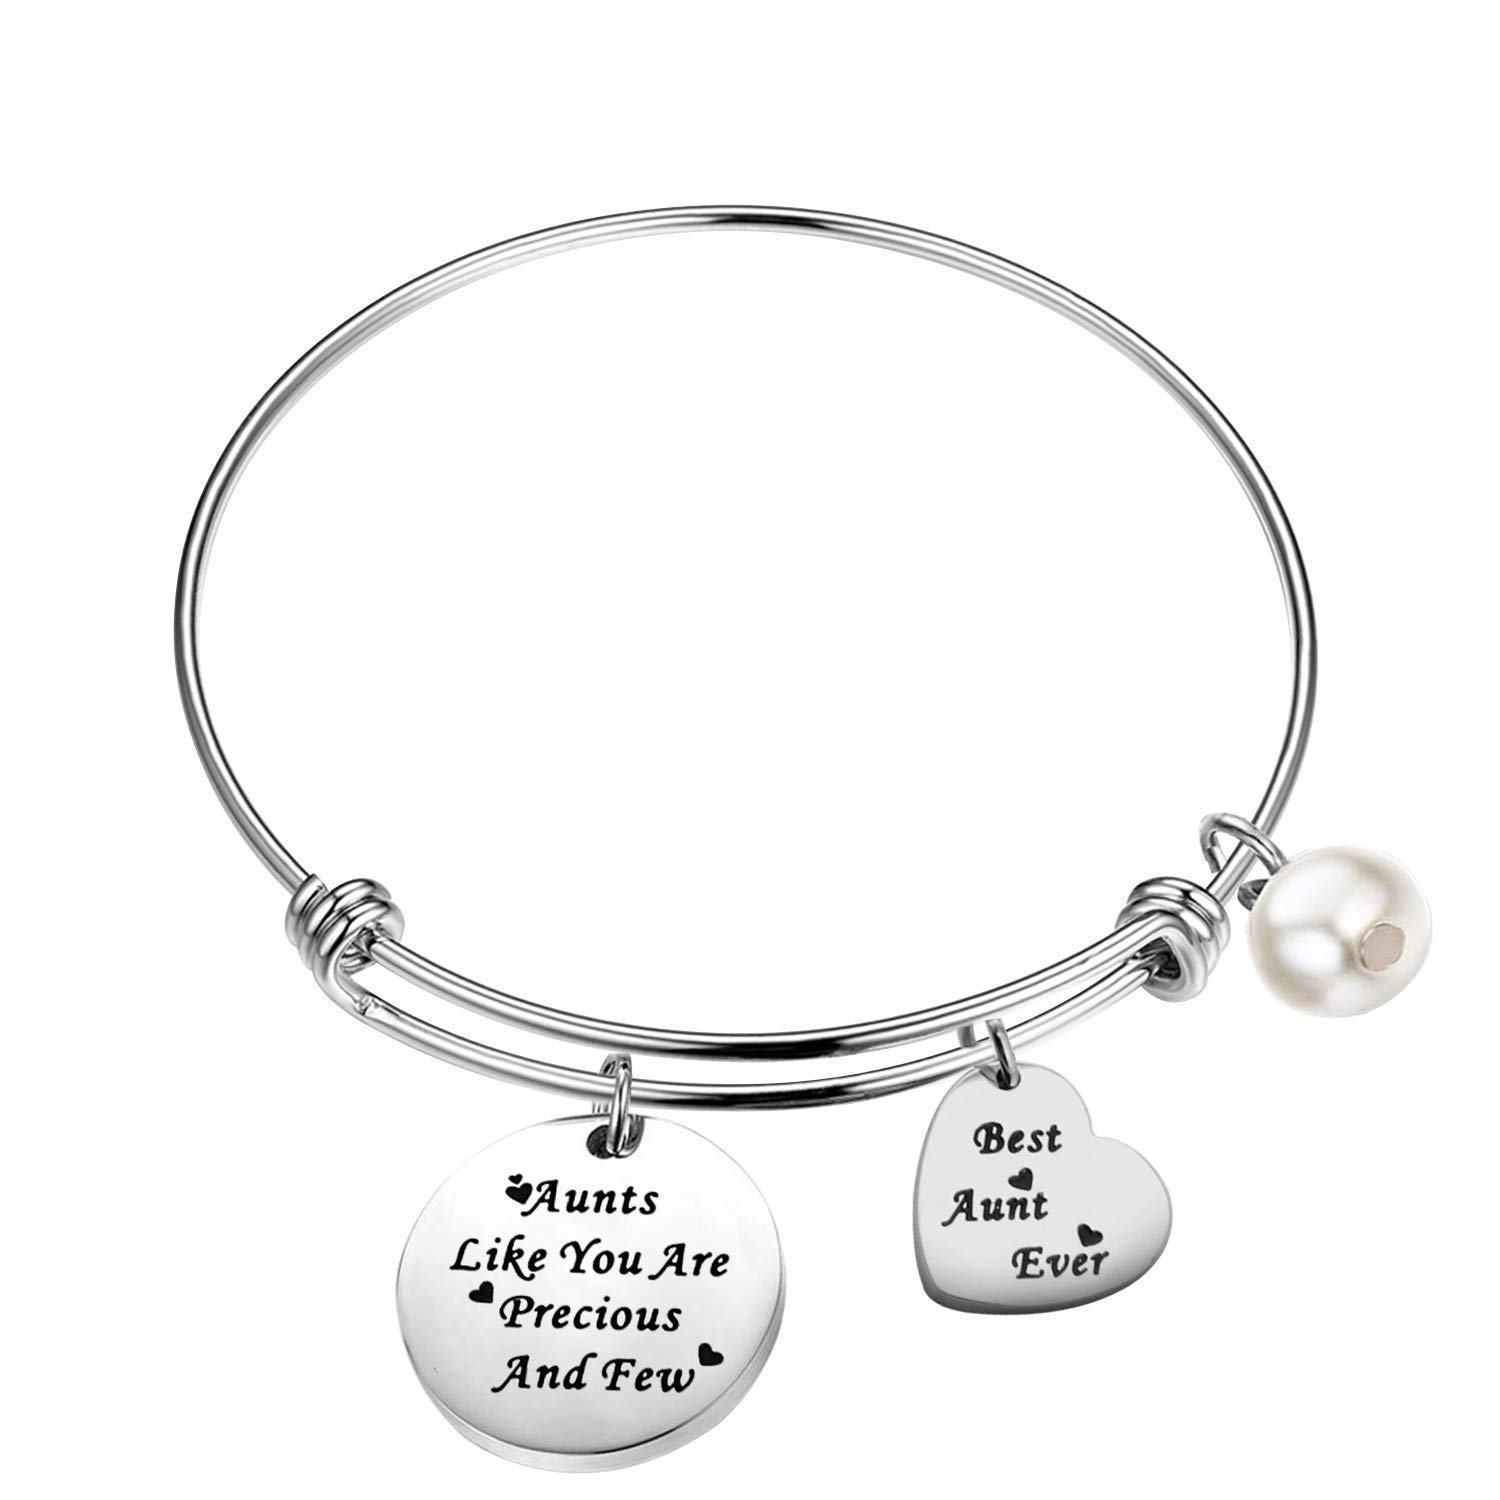 Aunts Like You are Precious and Few Bracelet Best Aunt Ever Gifts KUIYAI